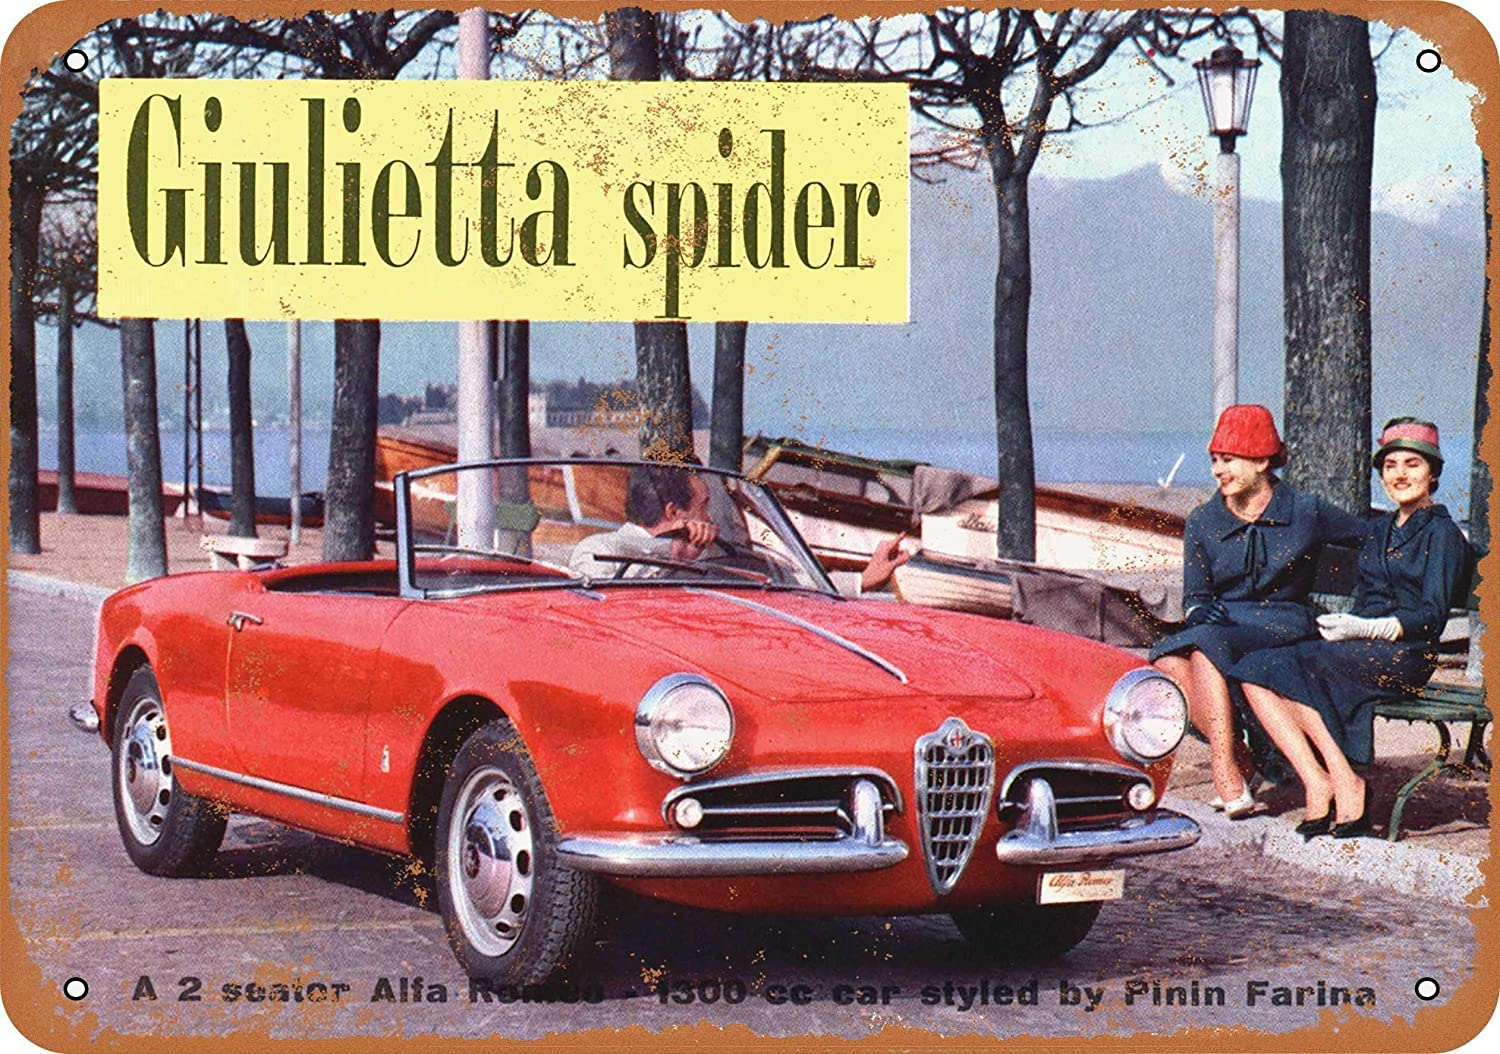 Alfa Romeo Giulietta Spider Tin Sign Vintage Iron Painting Wall Decorative Trend Popular Poster Handmade Art for Bar Cafe Store Home Garage